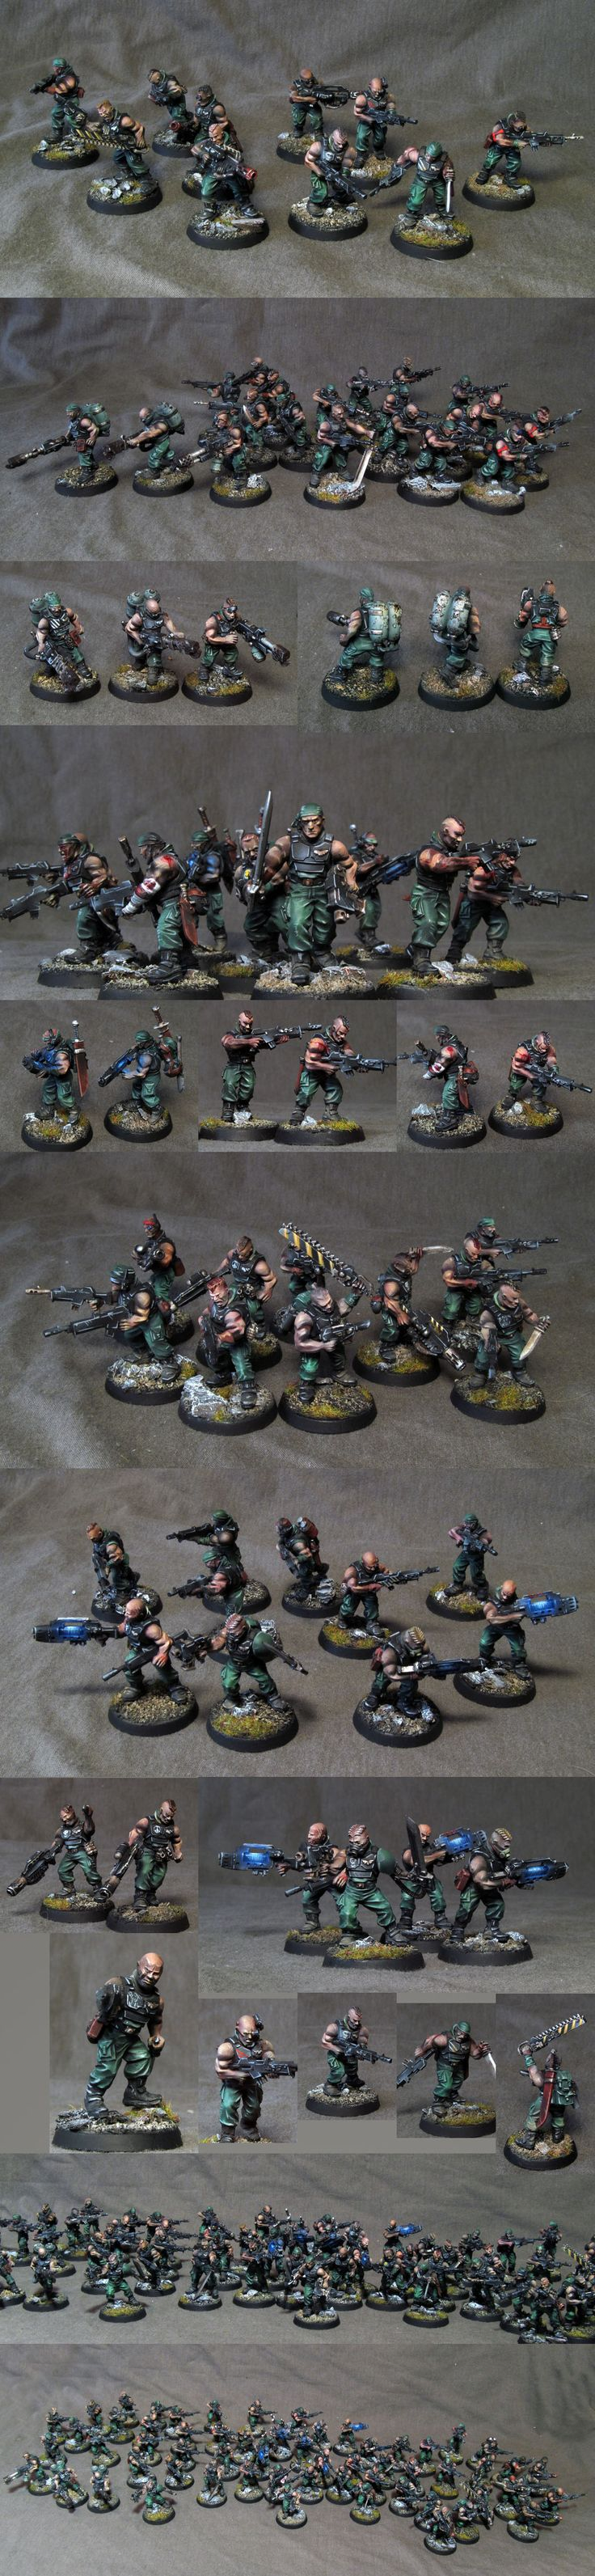 Imperial Guard troops (catachan)